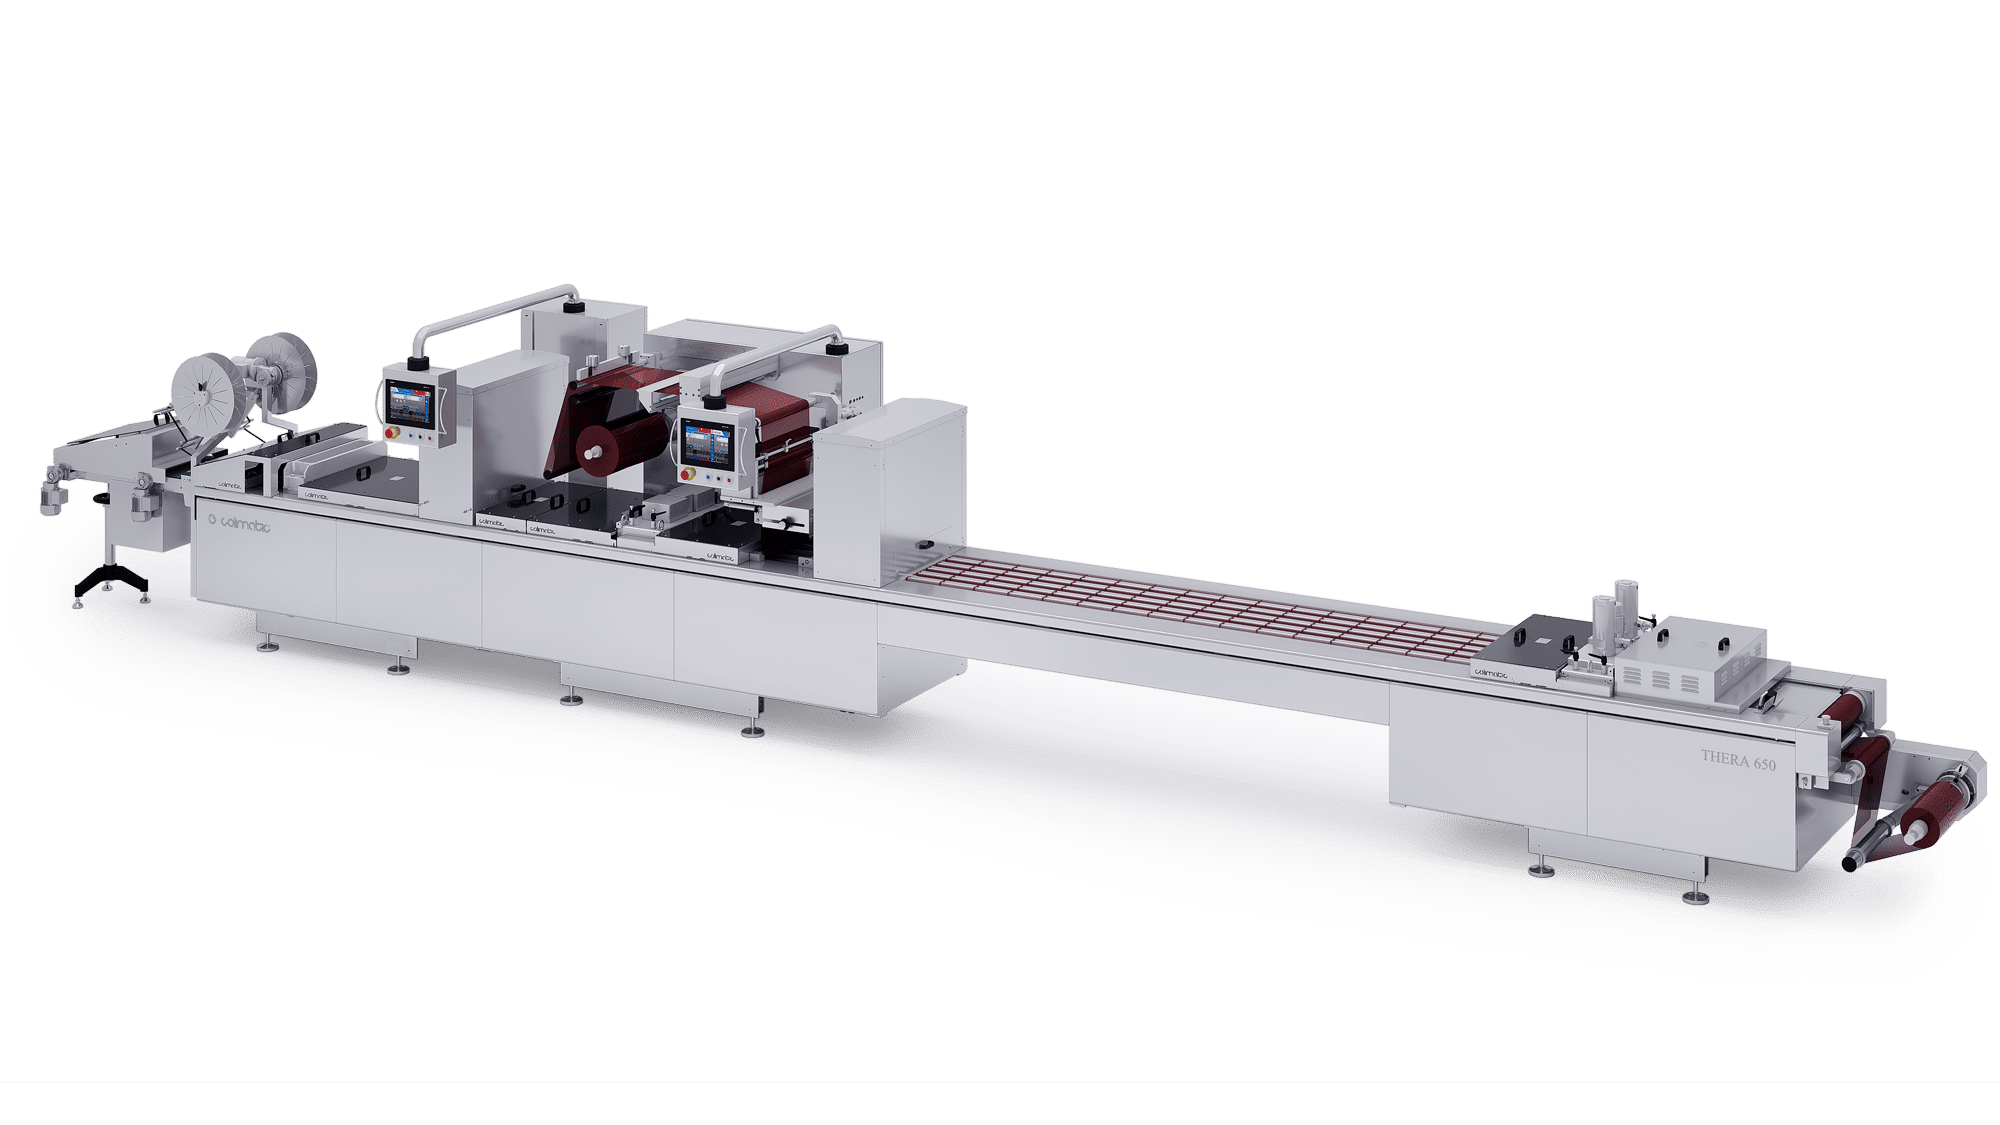 Termoformatrice Syringes 650 Colimatic industrial thermoforming machines